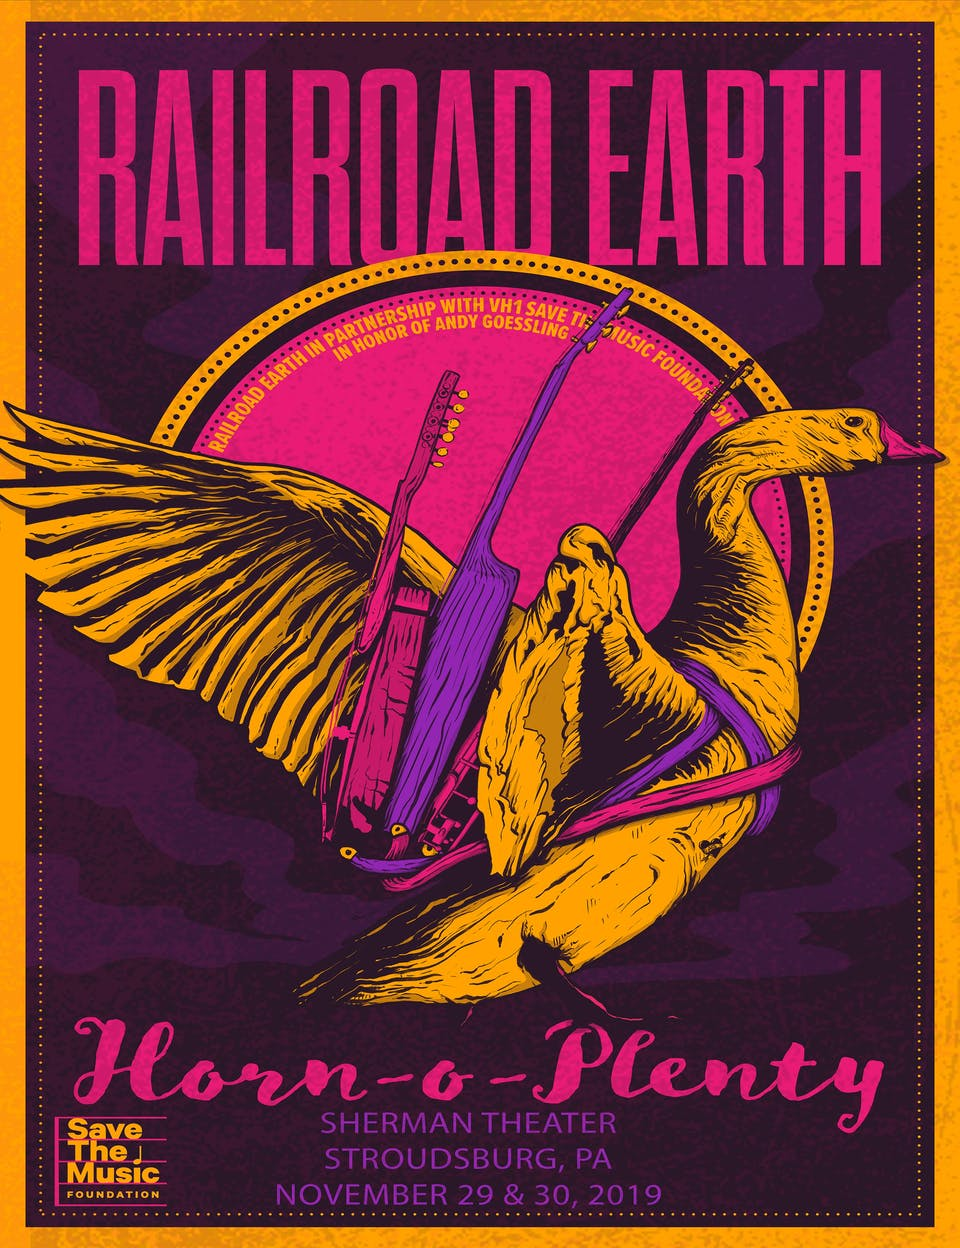 Railroad Earth - WEEKEND PASS